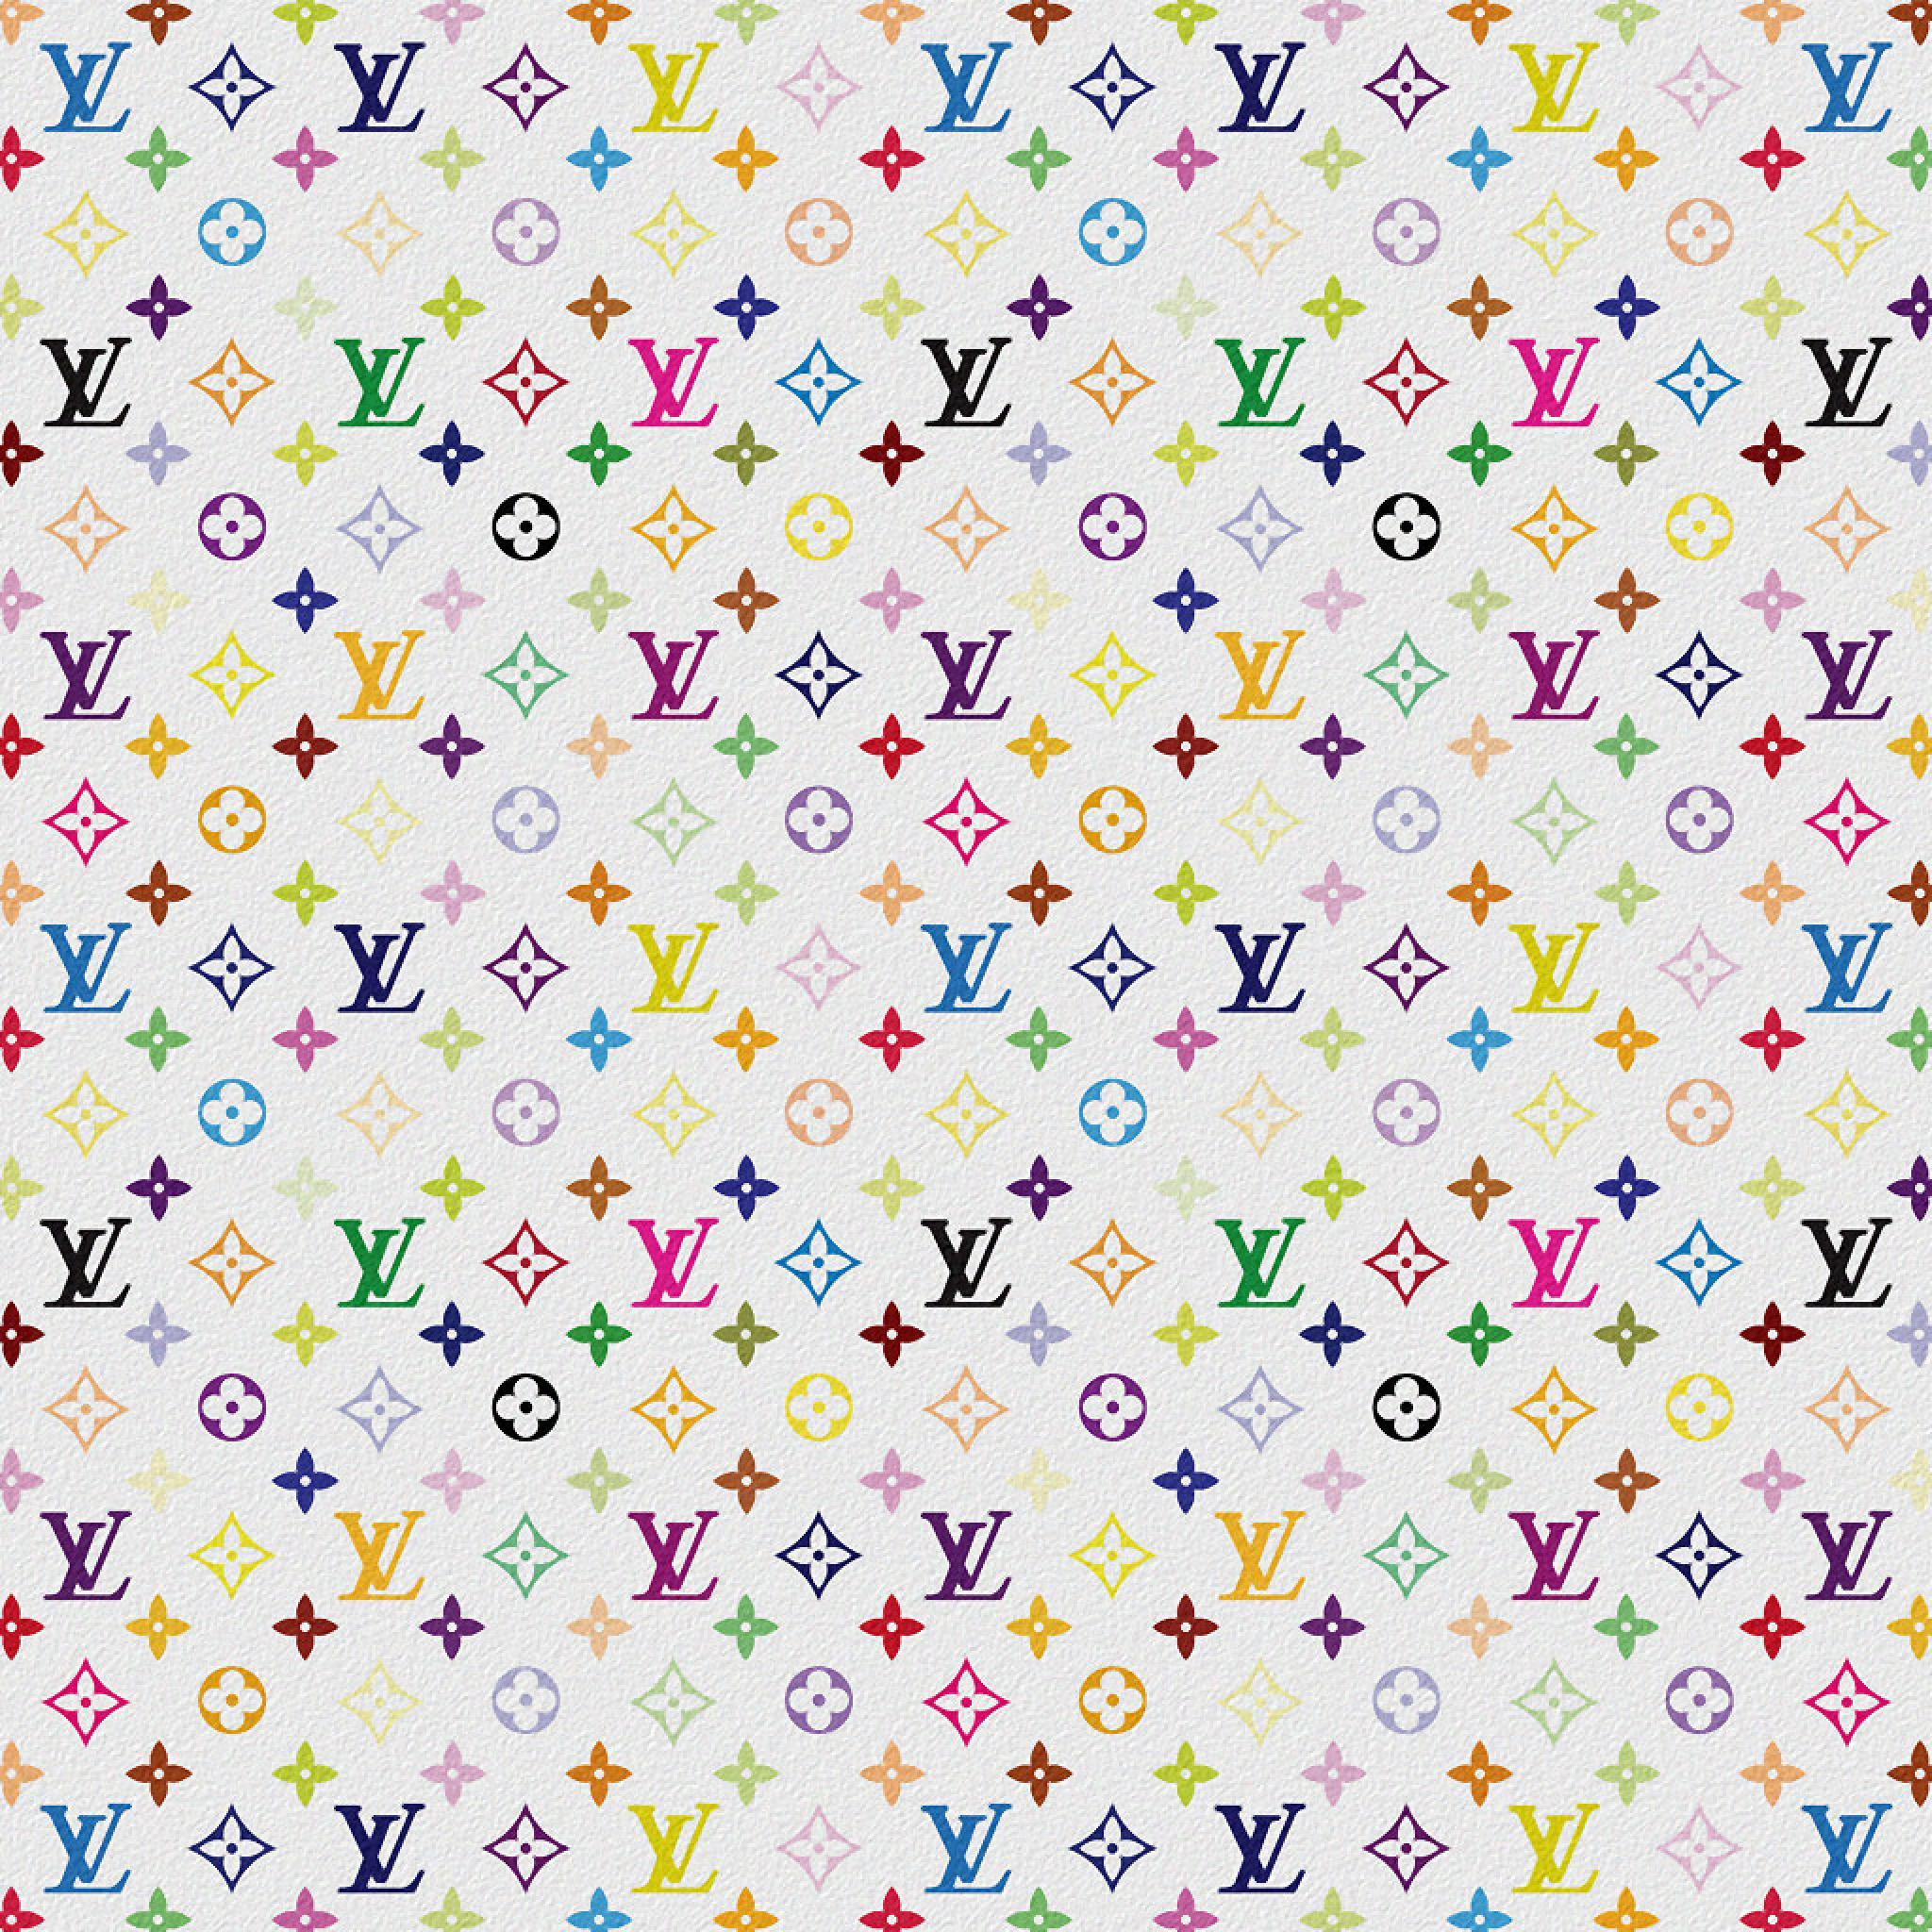 Louis vuitton colors professional – isamaremag.com